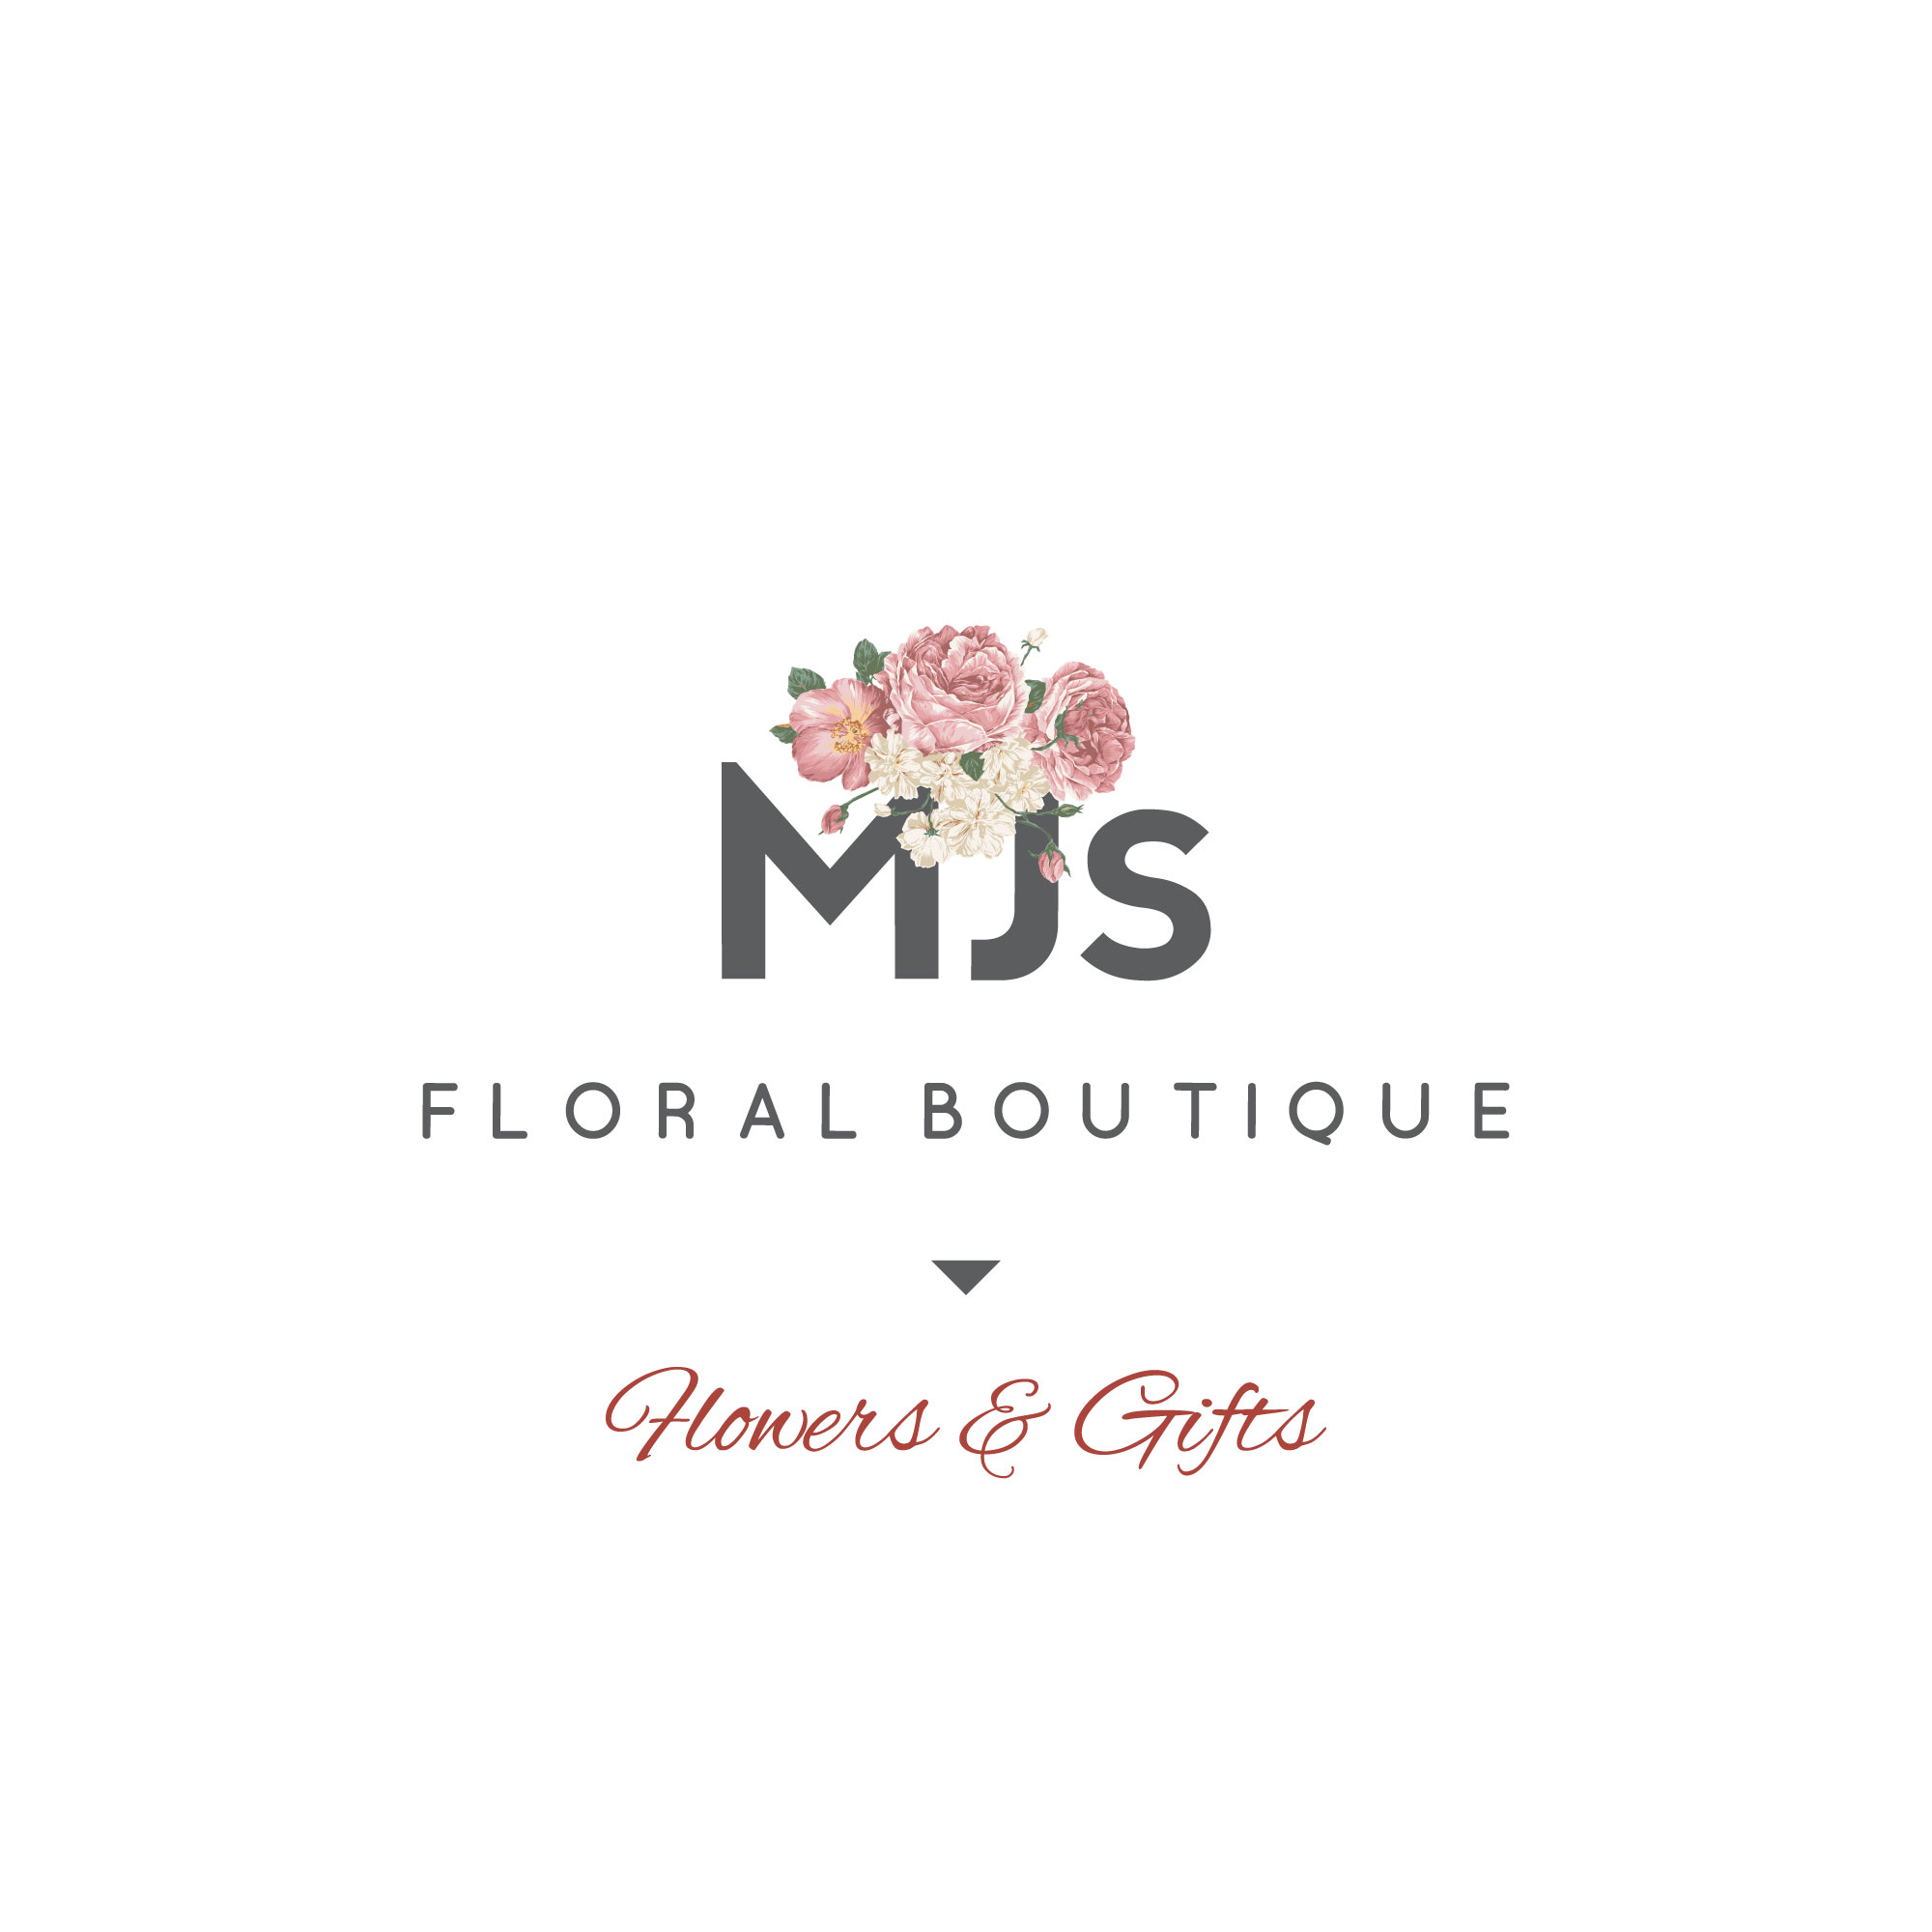 MJs Floral Boutique